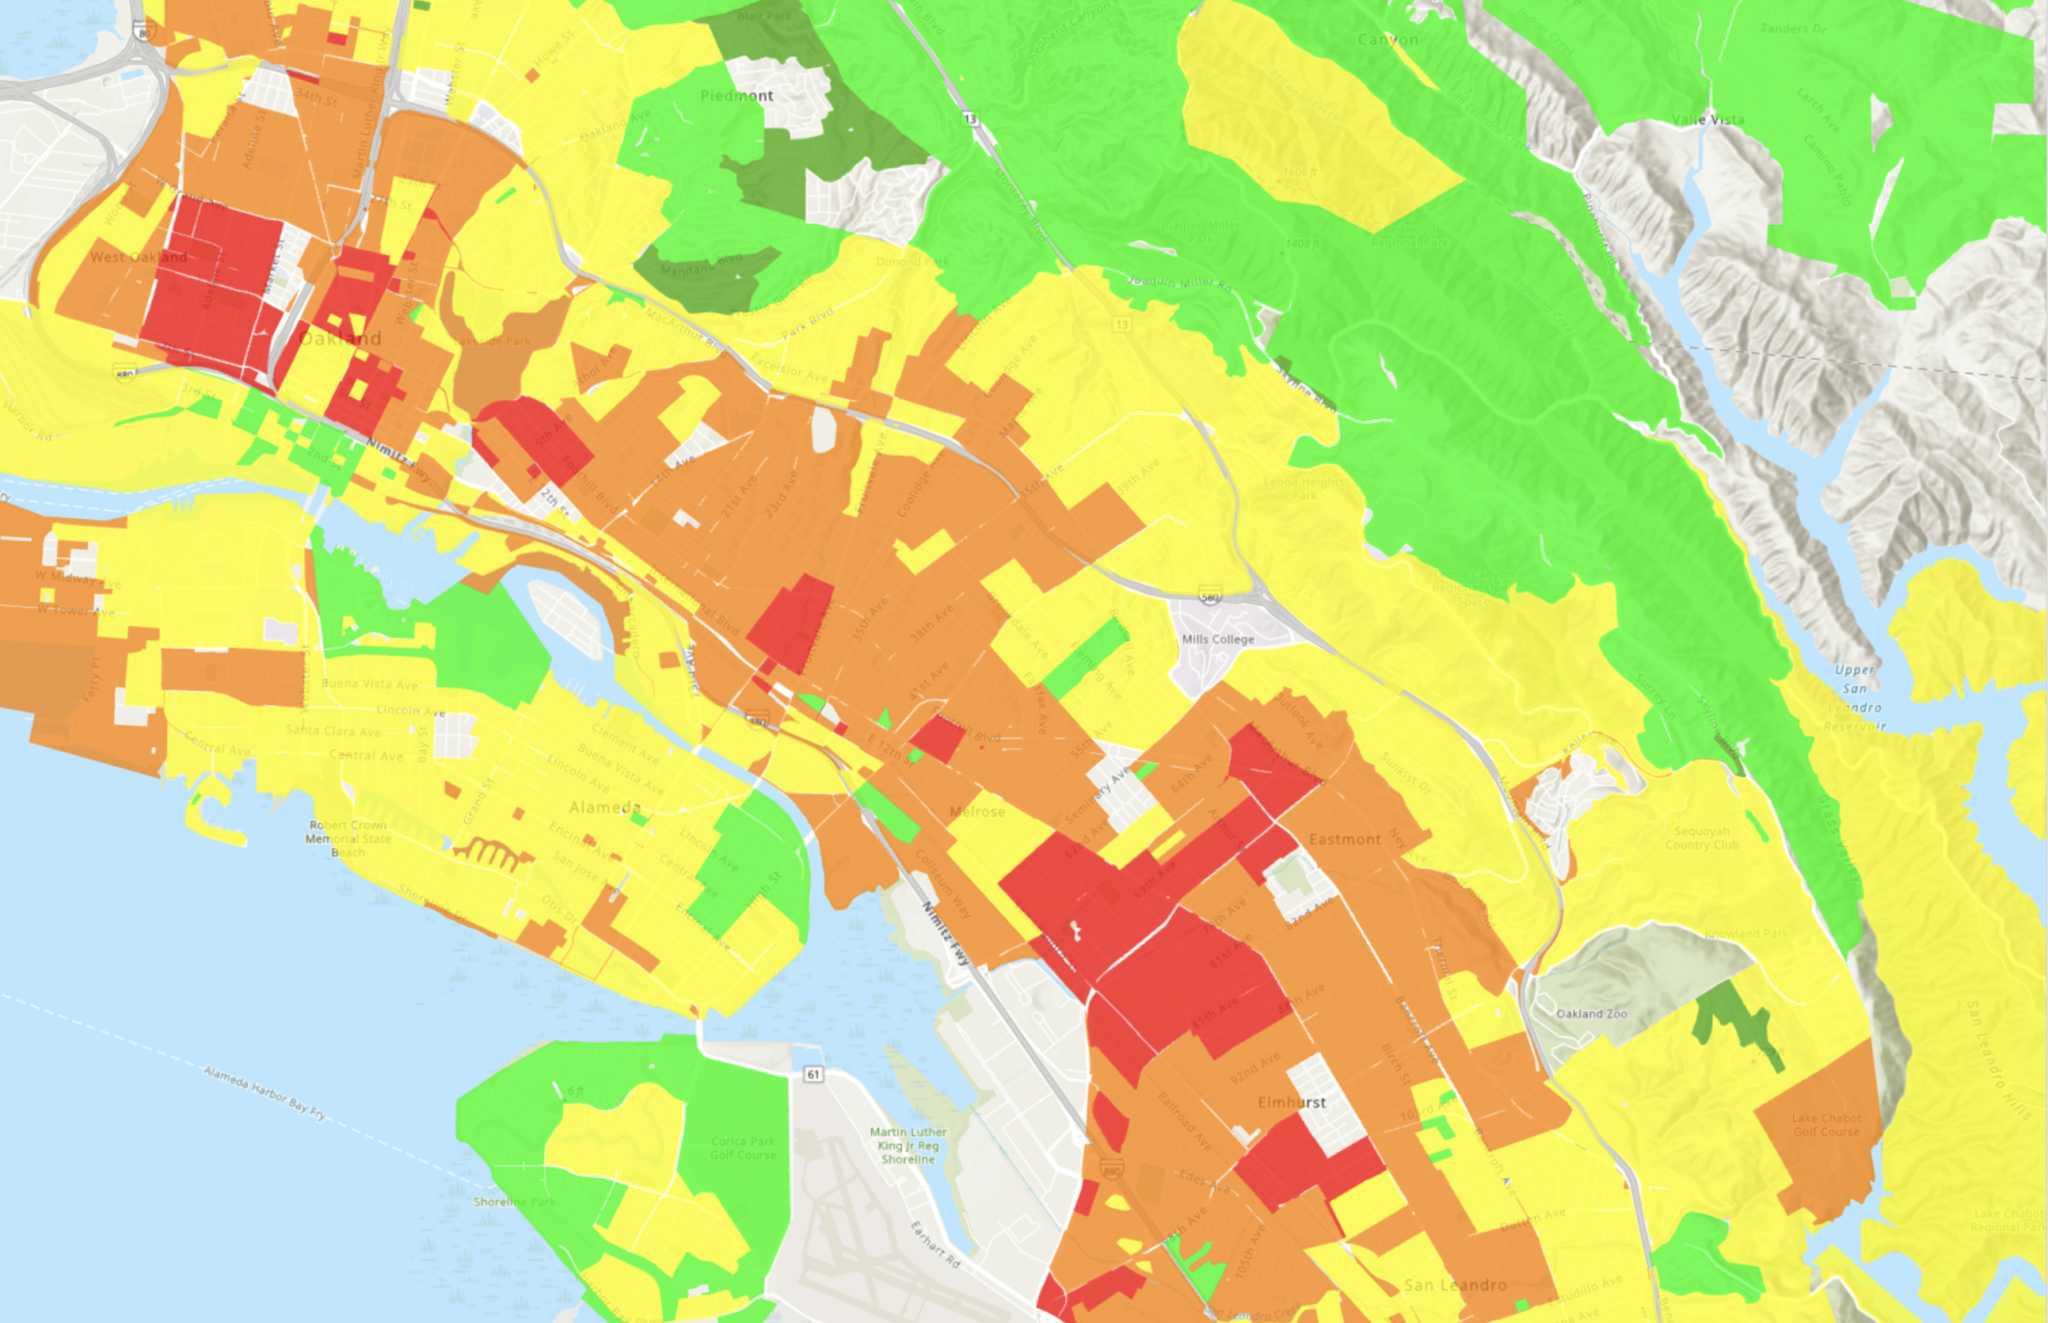 A heat map of the CIty of Oakland's Digital Divide in 2020.